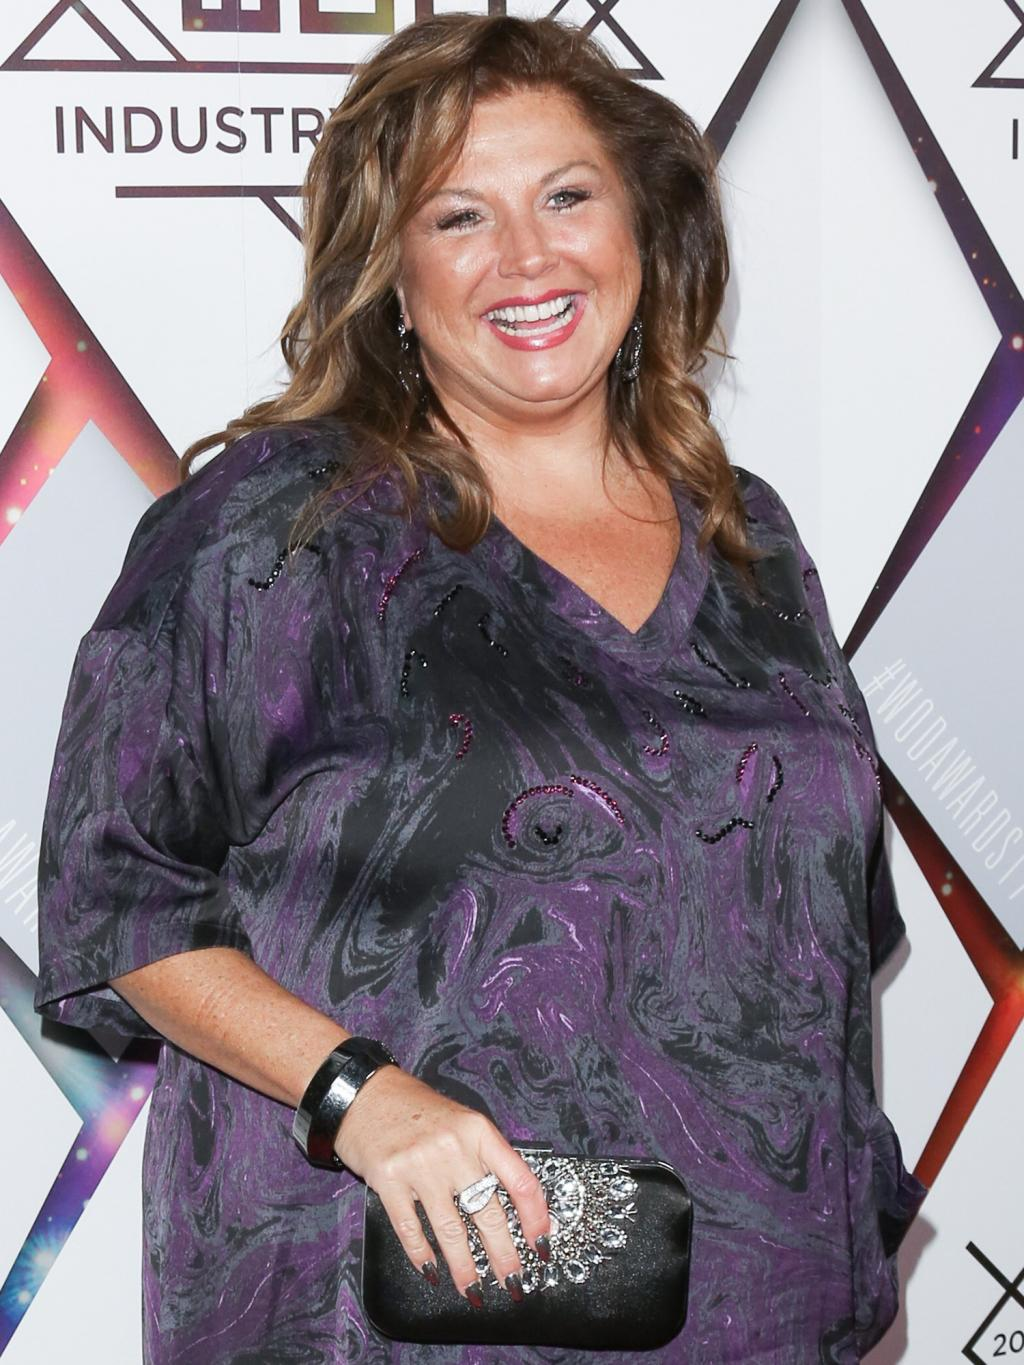 Dance Moms      '  Abby Lee Miller Is Trying        to Stay Positive      '  Amid Current Legal Woes:       'I Don       't Want to Make Light of It